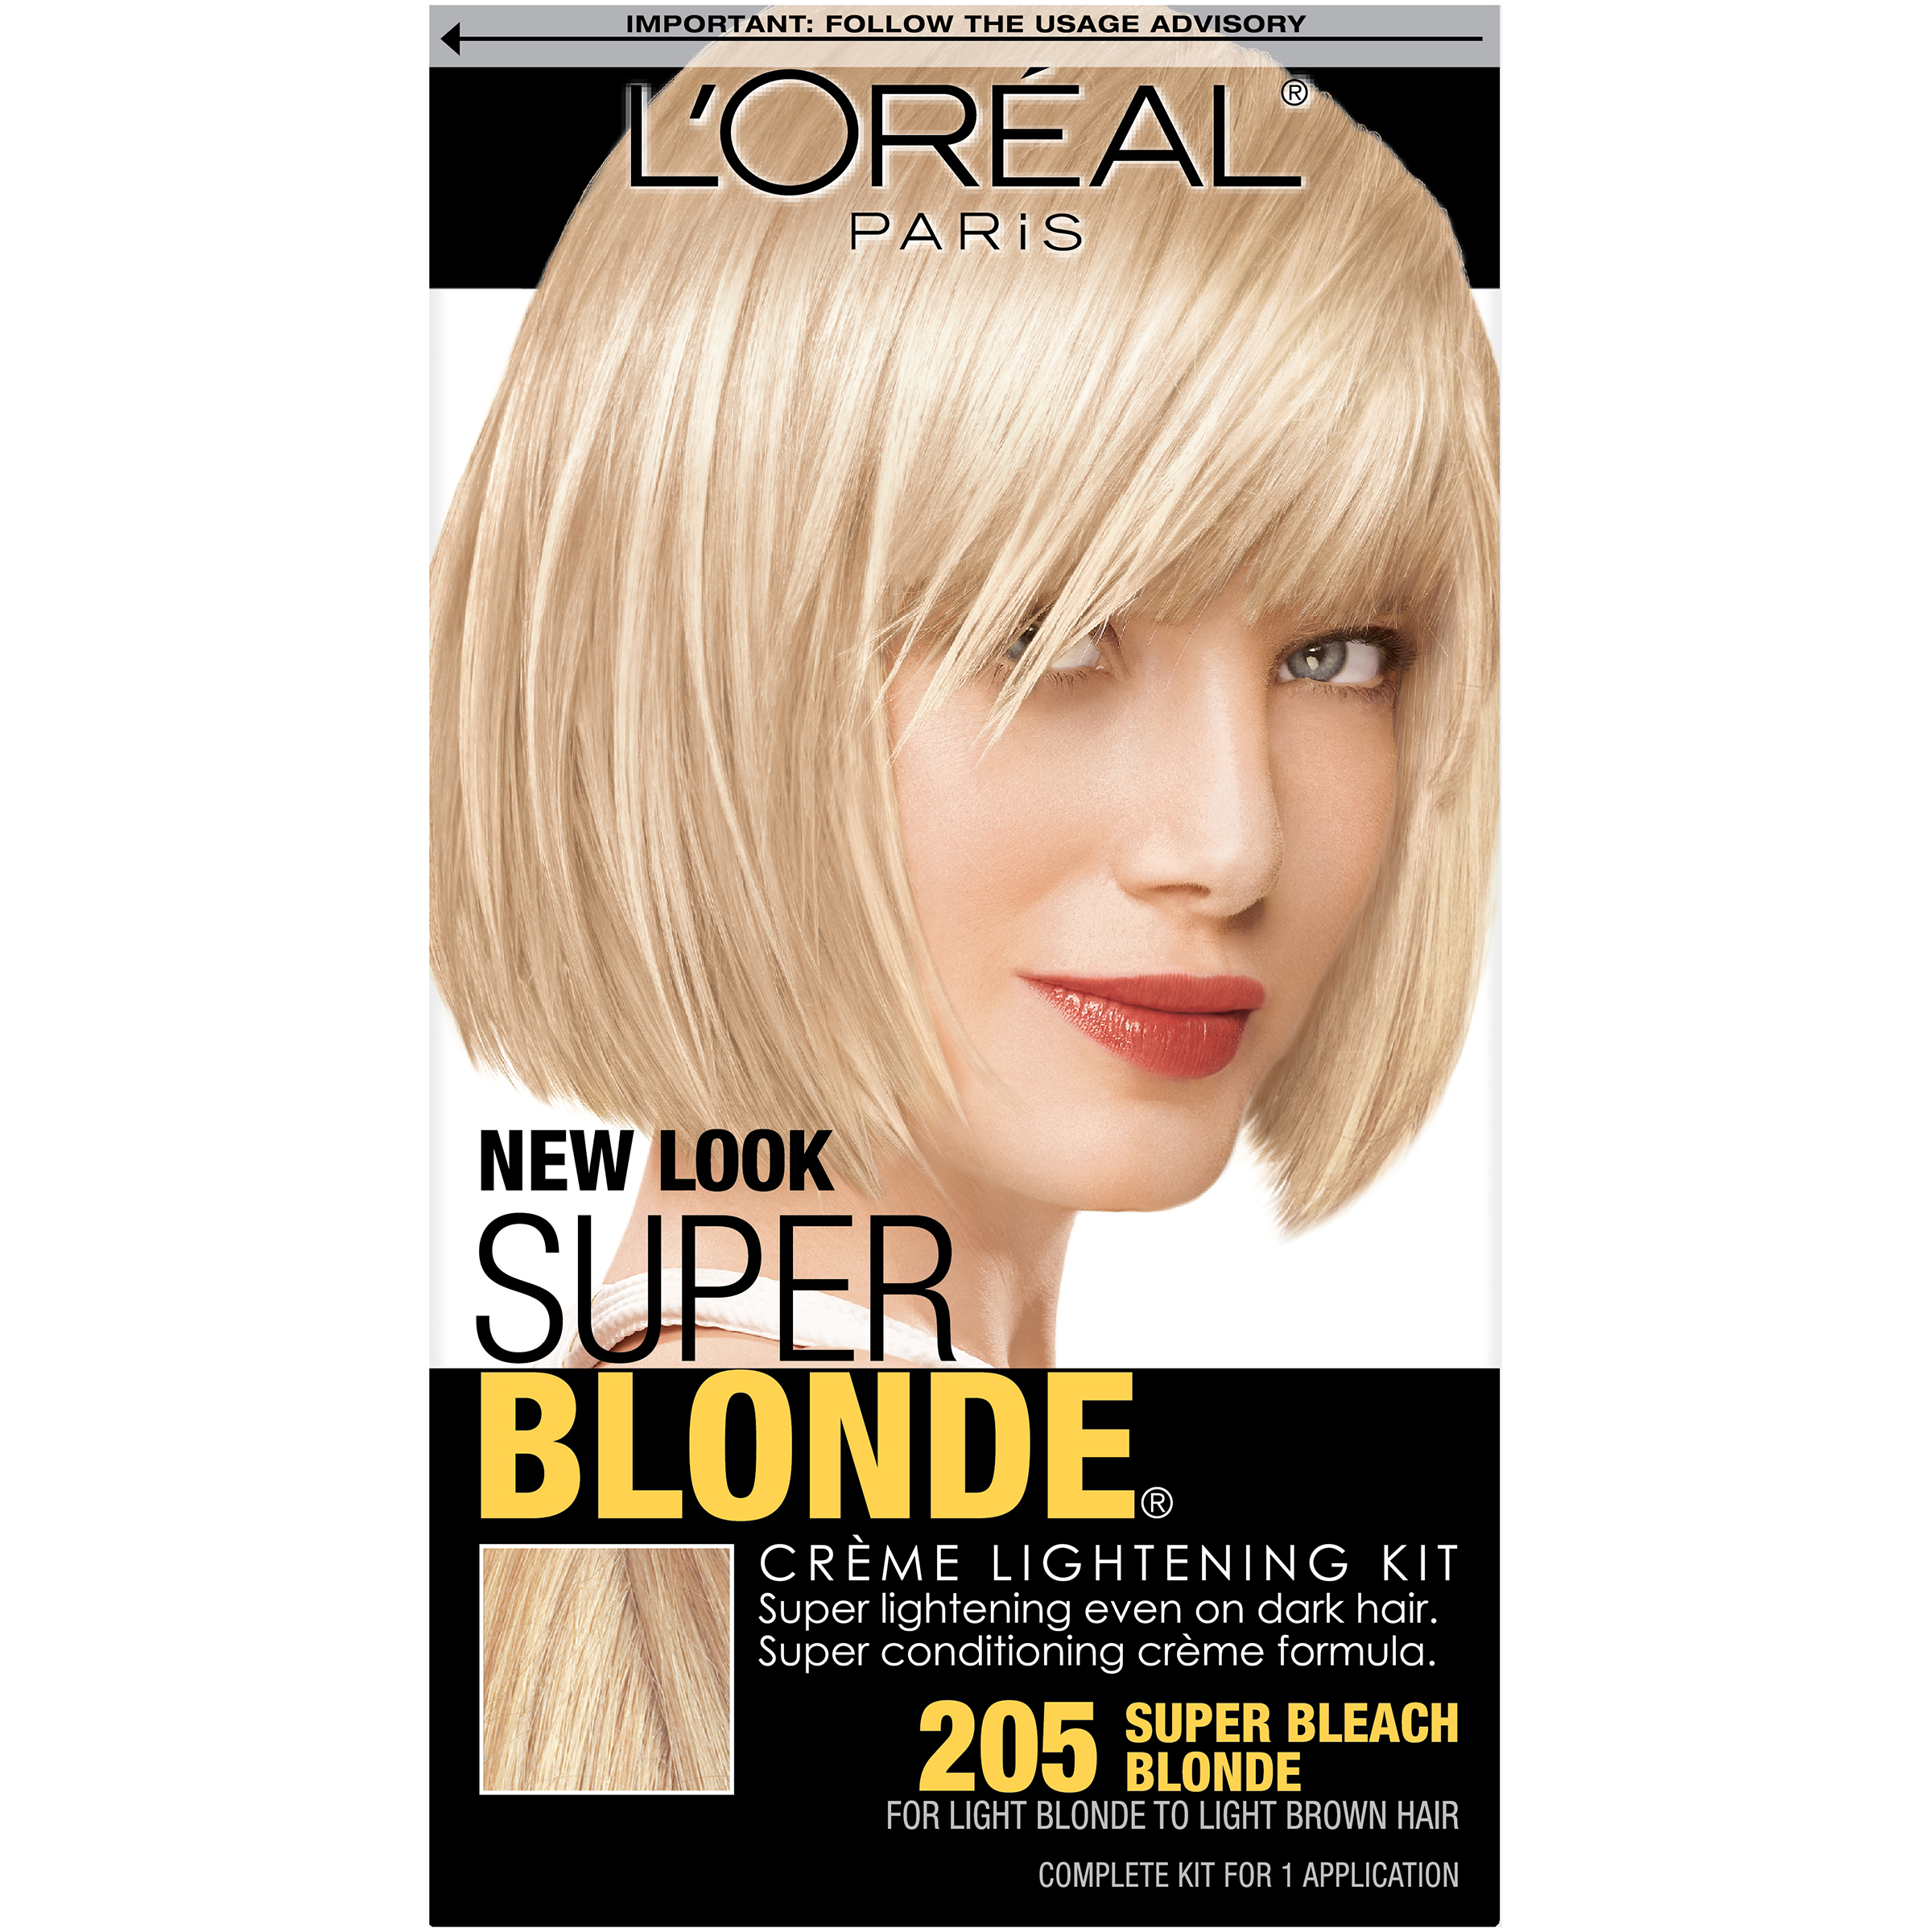 Loreal Paris Super Bleach Blonde 205 Creme Lightening Kit ...